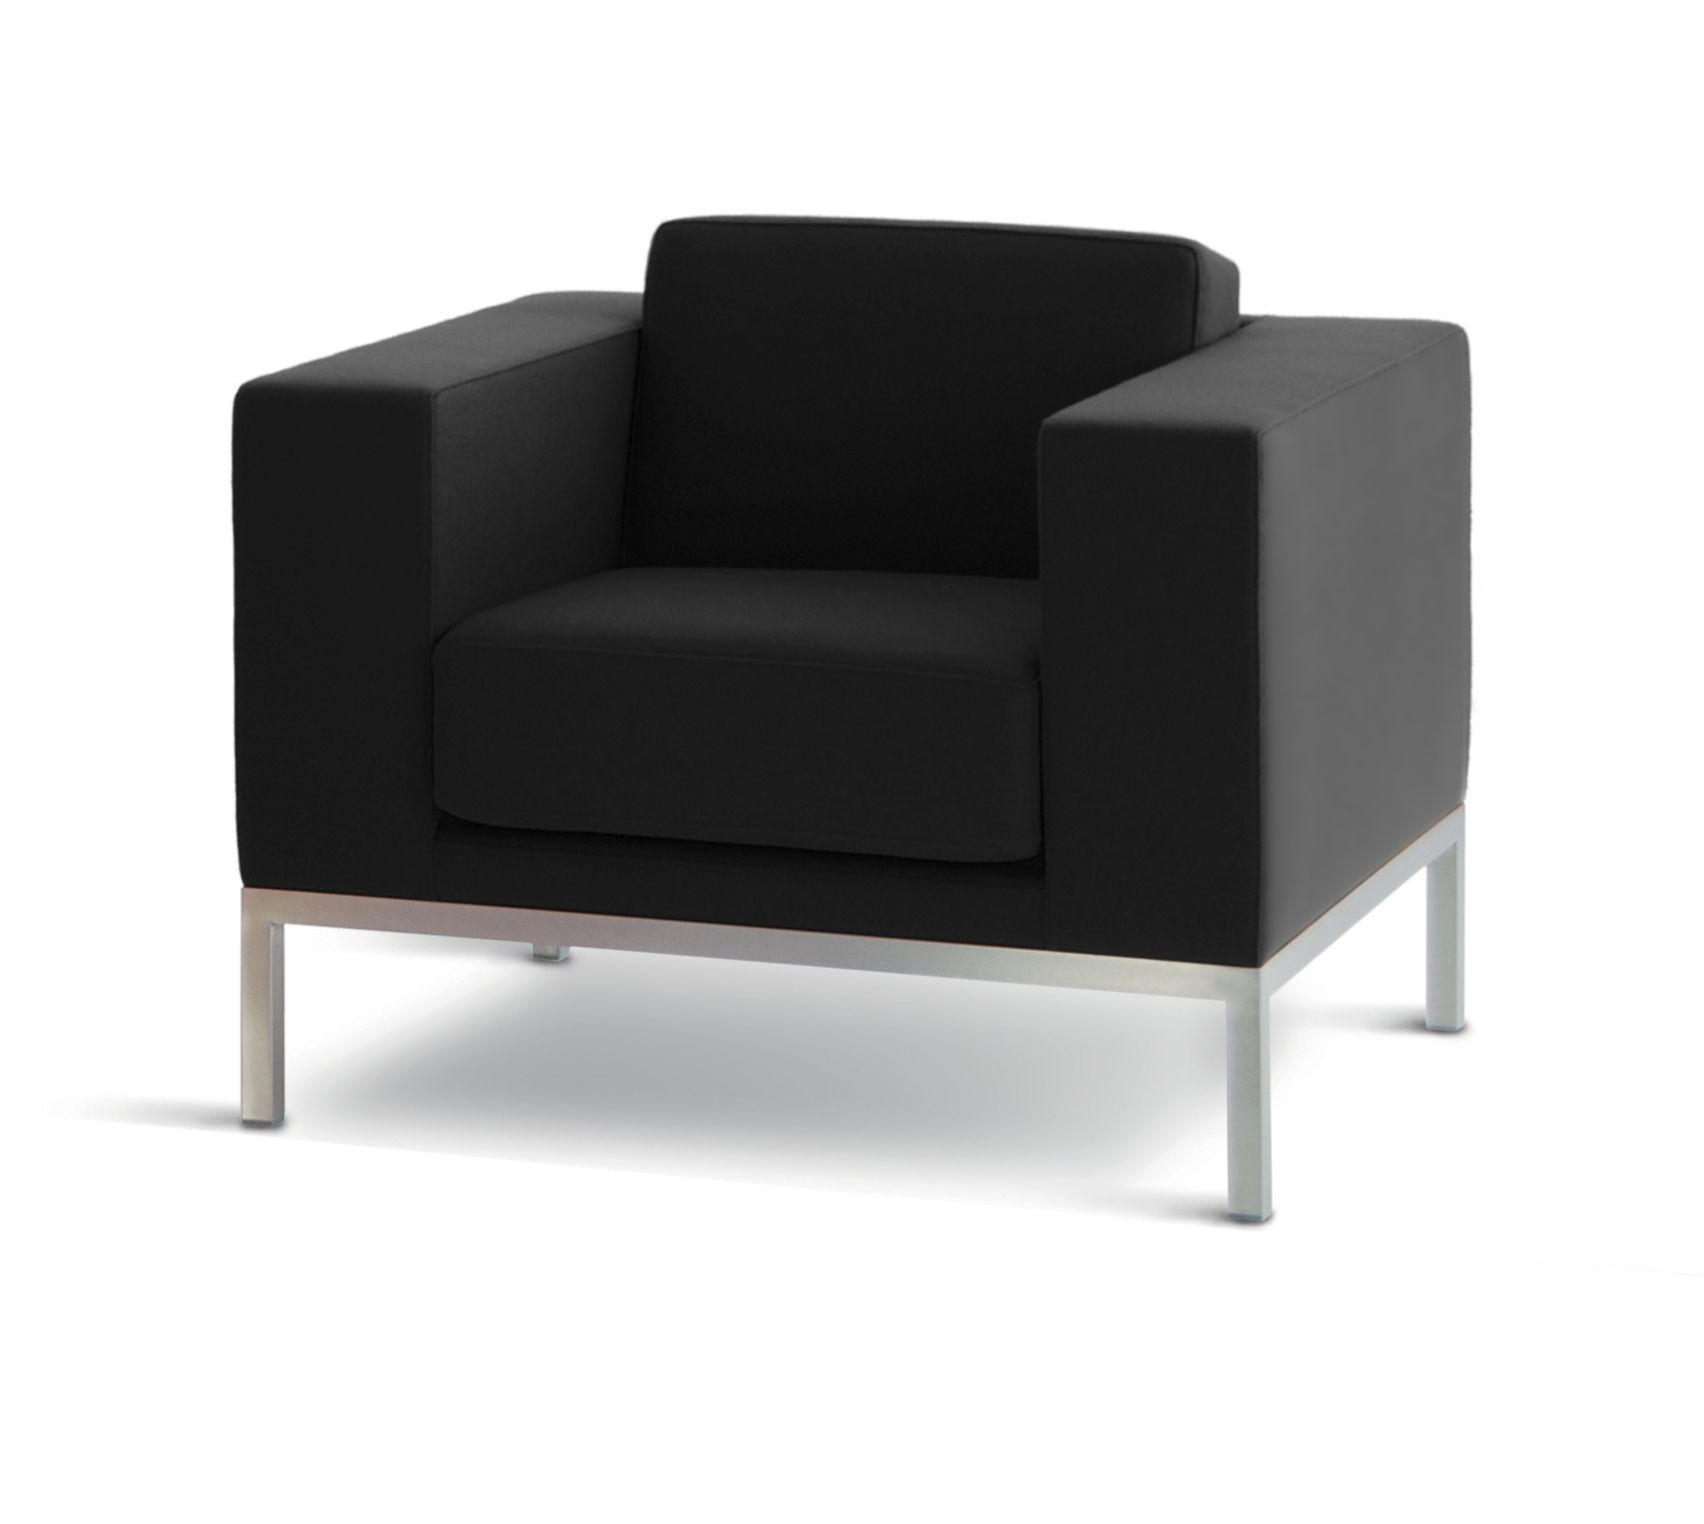 hitch mylius | hm25a armchair upholstered in black leather